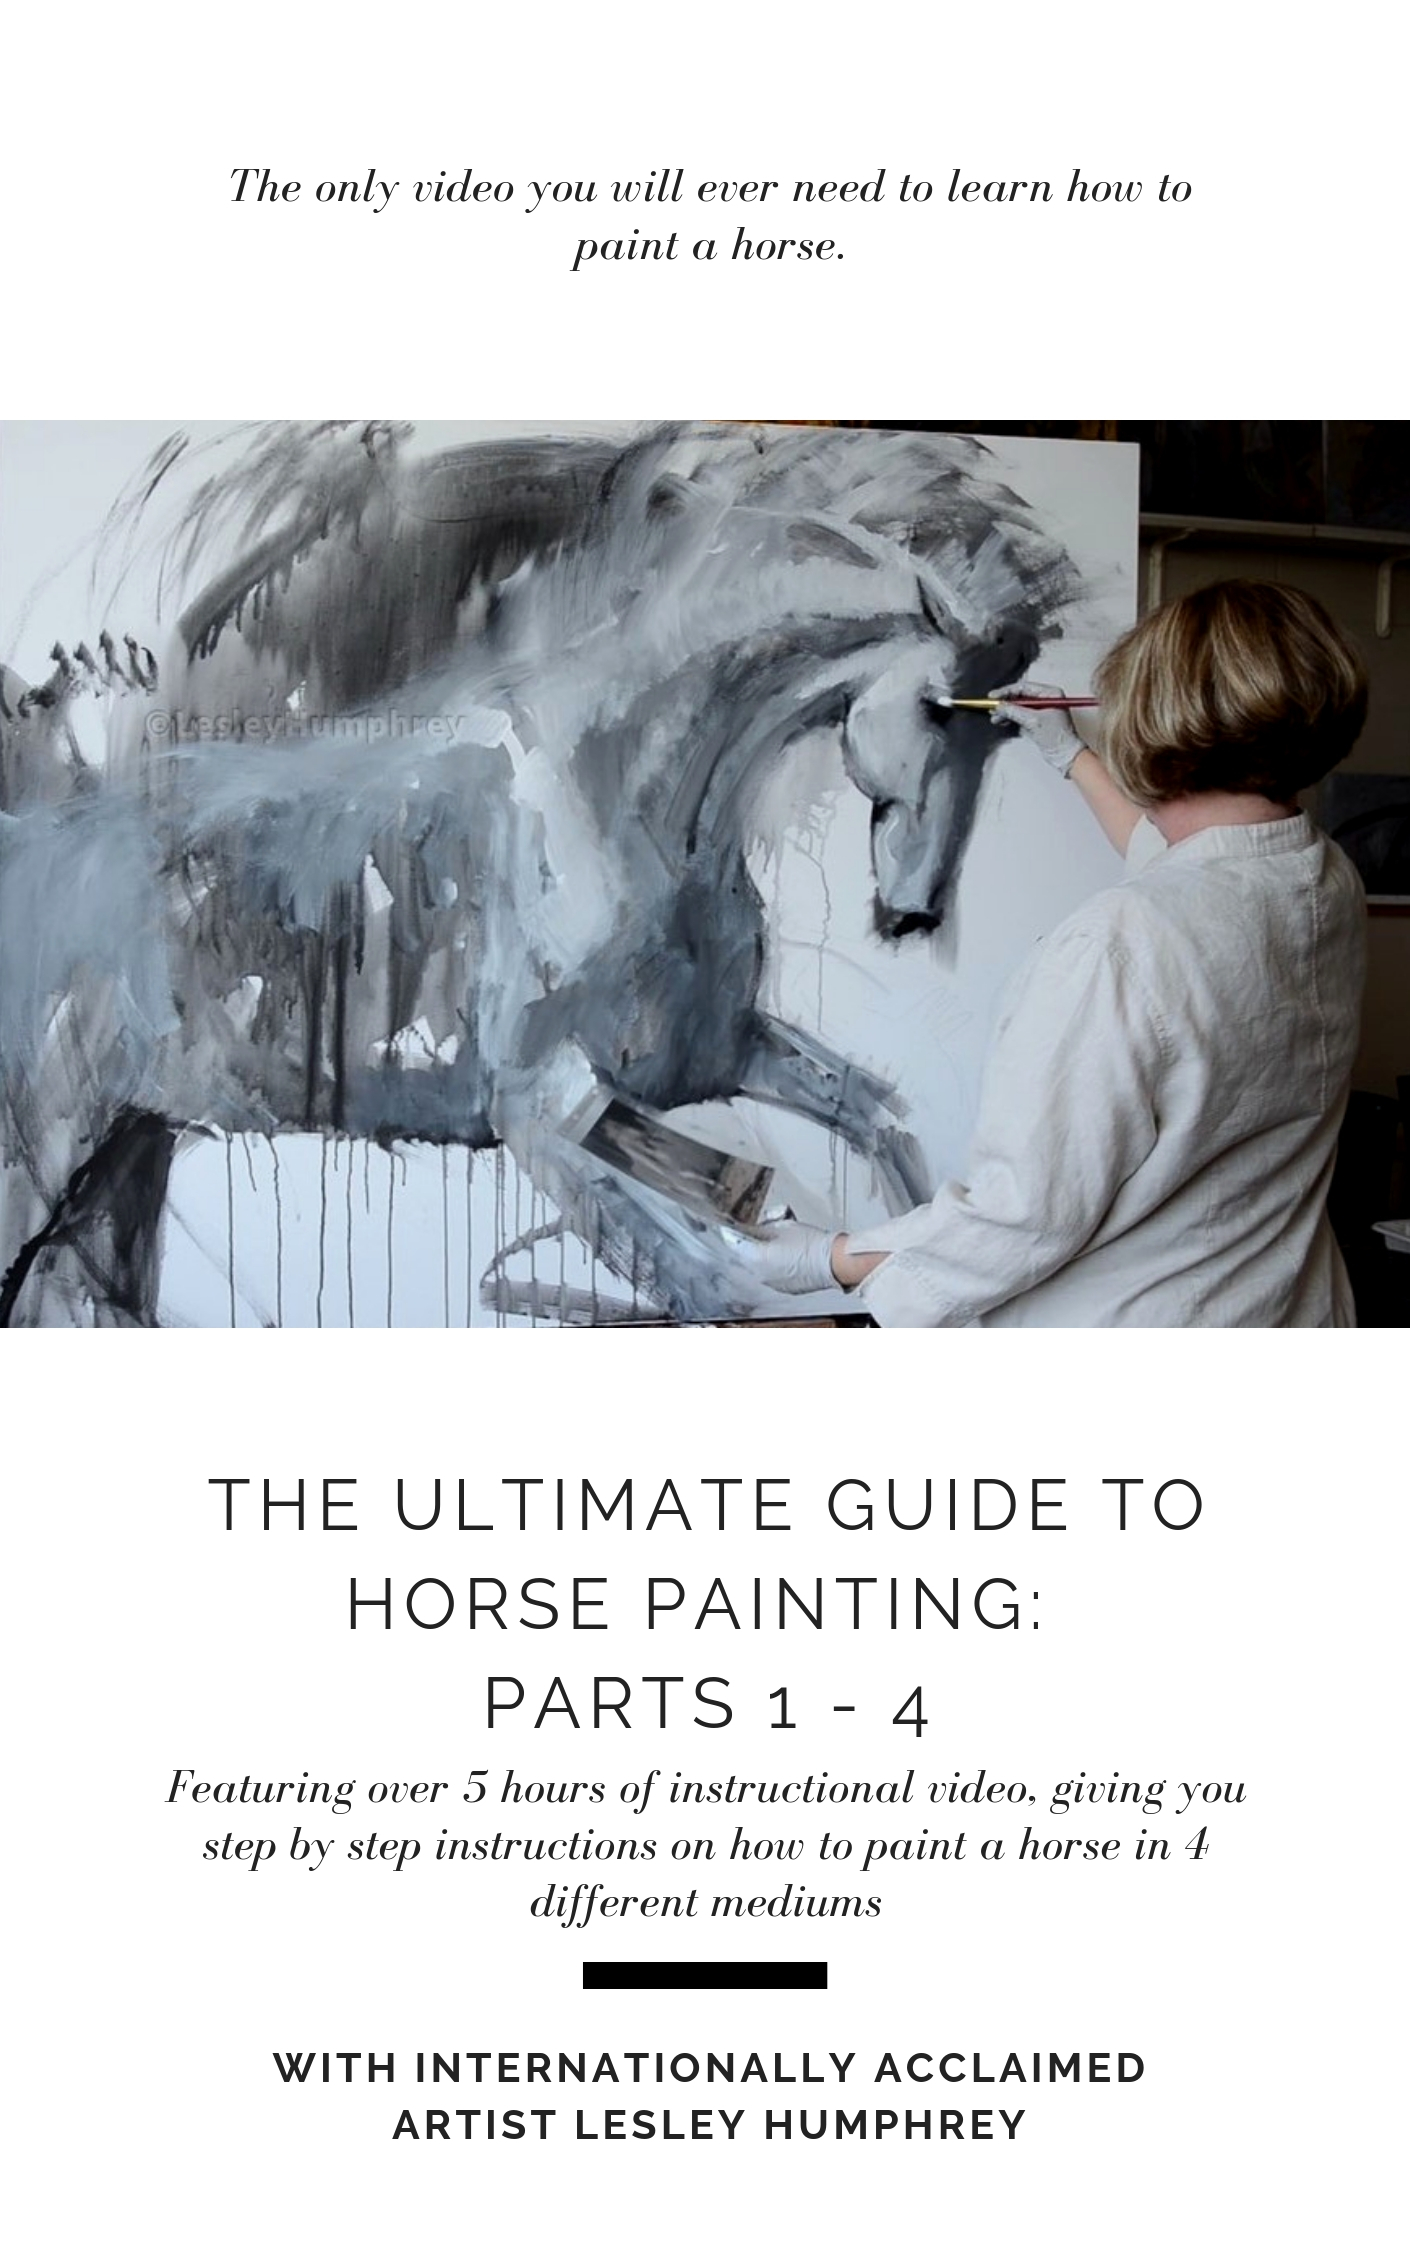 THE ULTIMATE GUIDE TO HORSE PAINTING (2).jpg